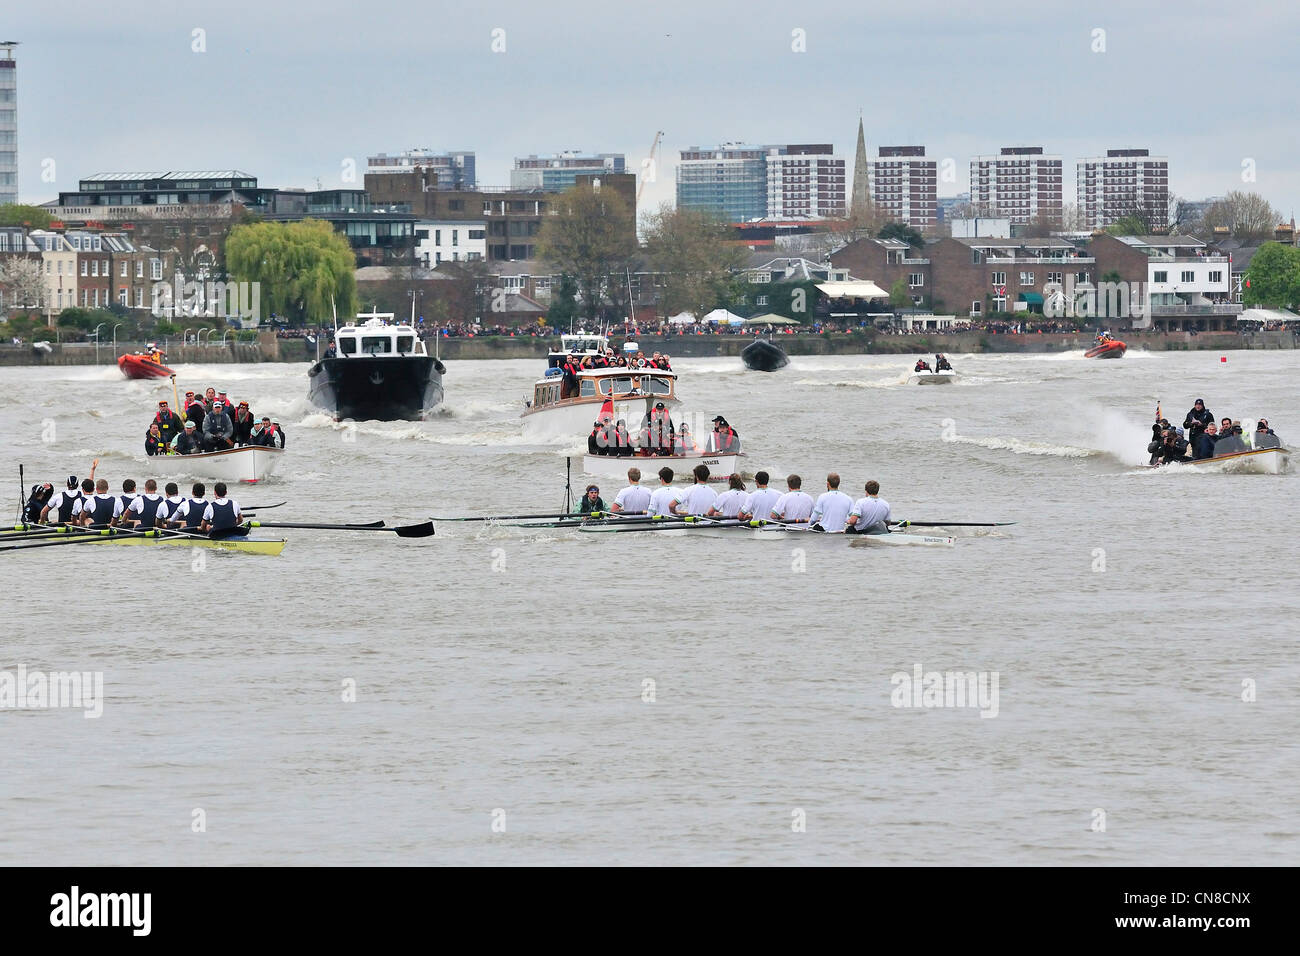 Cox protests the broken oar on the Oxford boat (left )at the restart of Oxford Cambridge race after the swimmer - Stock Image